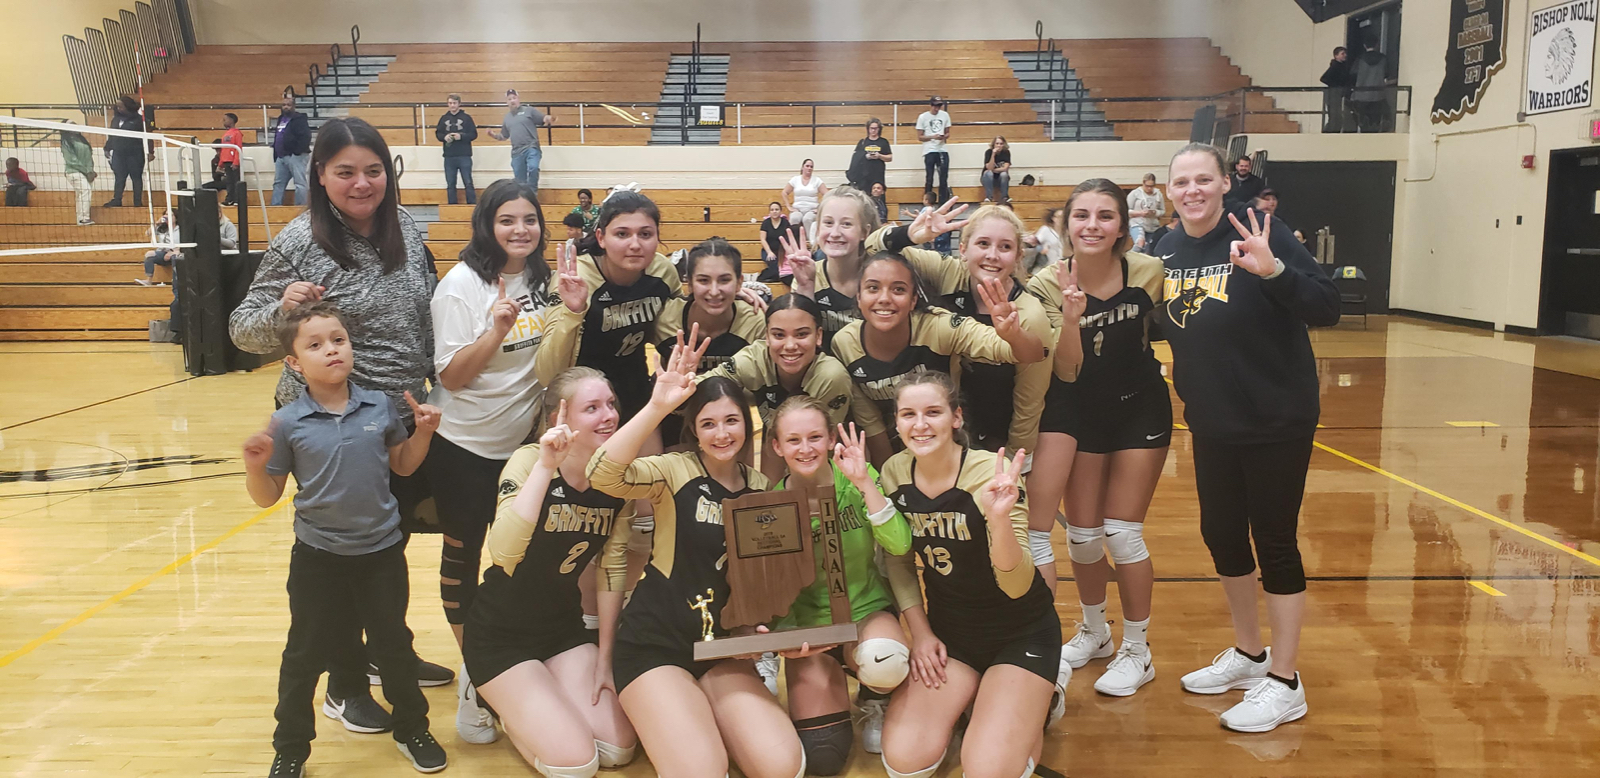 It's a 3-Peat!!!! Griffith Wins!!!! Congratulations Lady Panthers on the sweep to win the Sectional!!!!!! GRIFFITH ADVANCES TO THE REGIONAL NEXT WEEK!!!